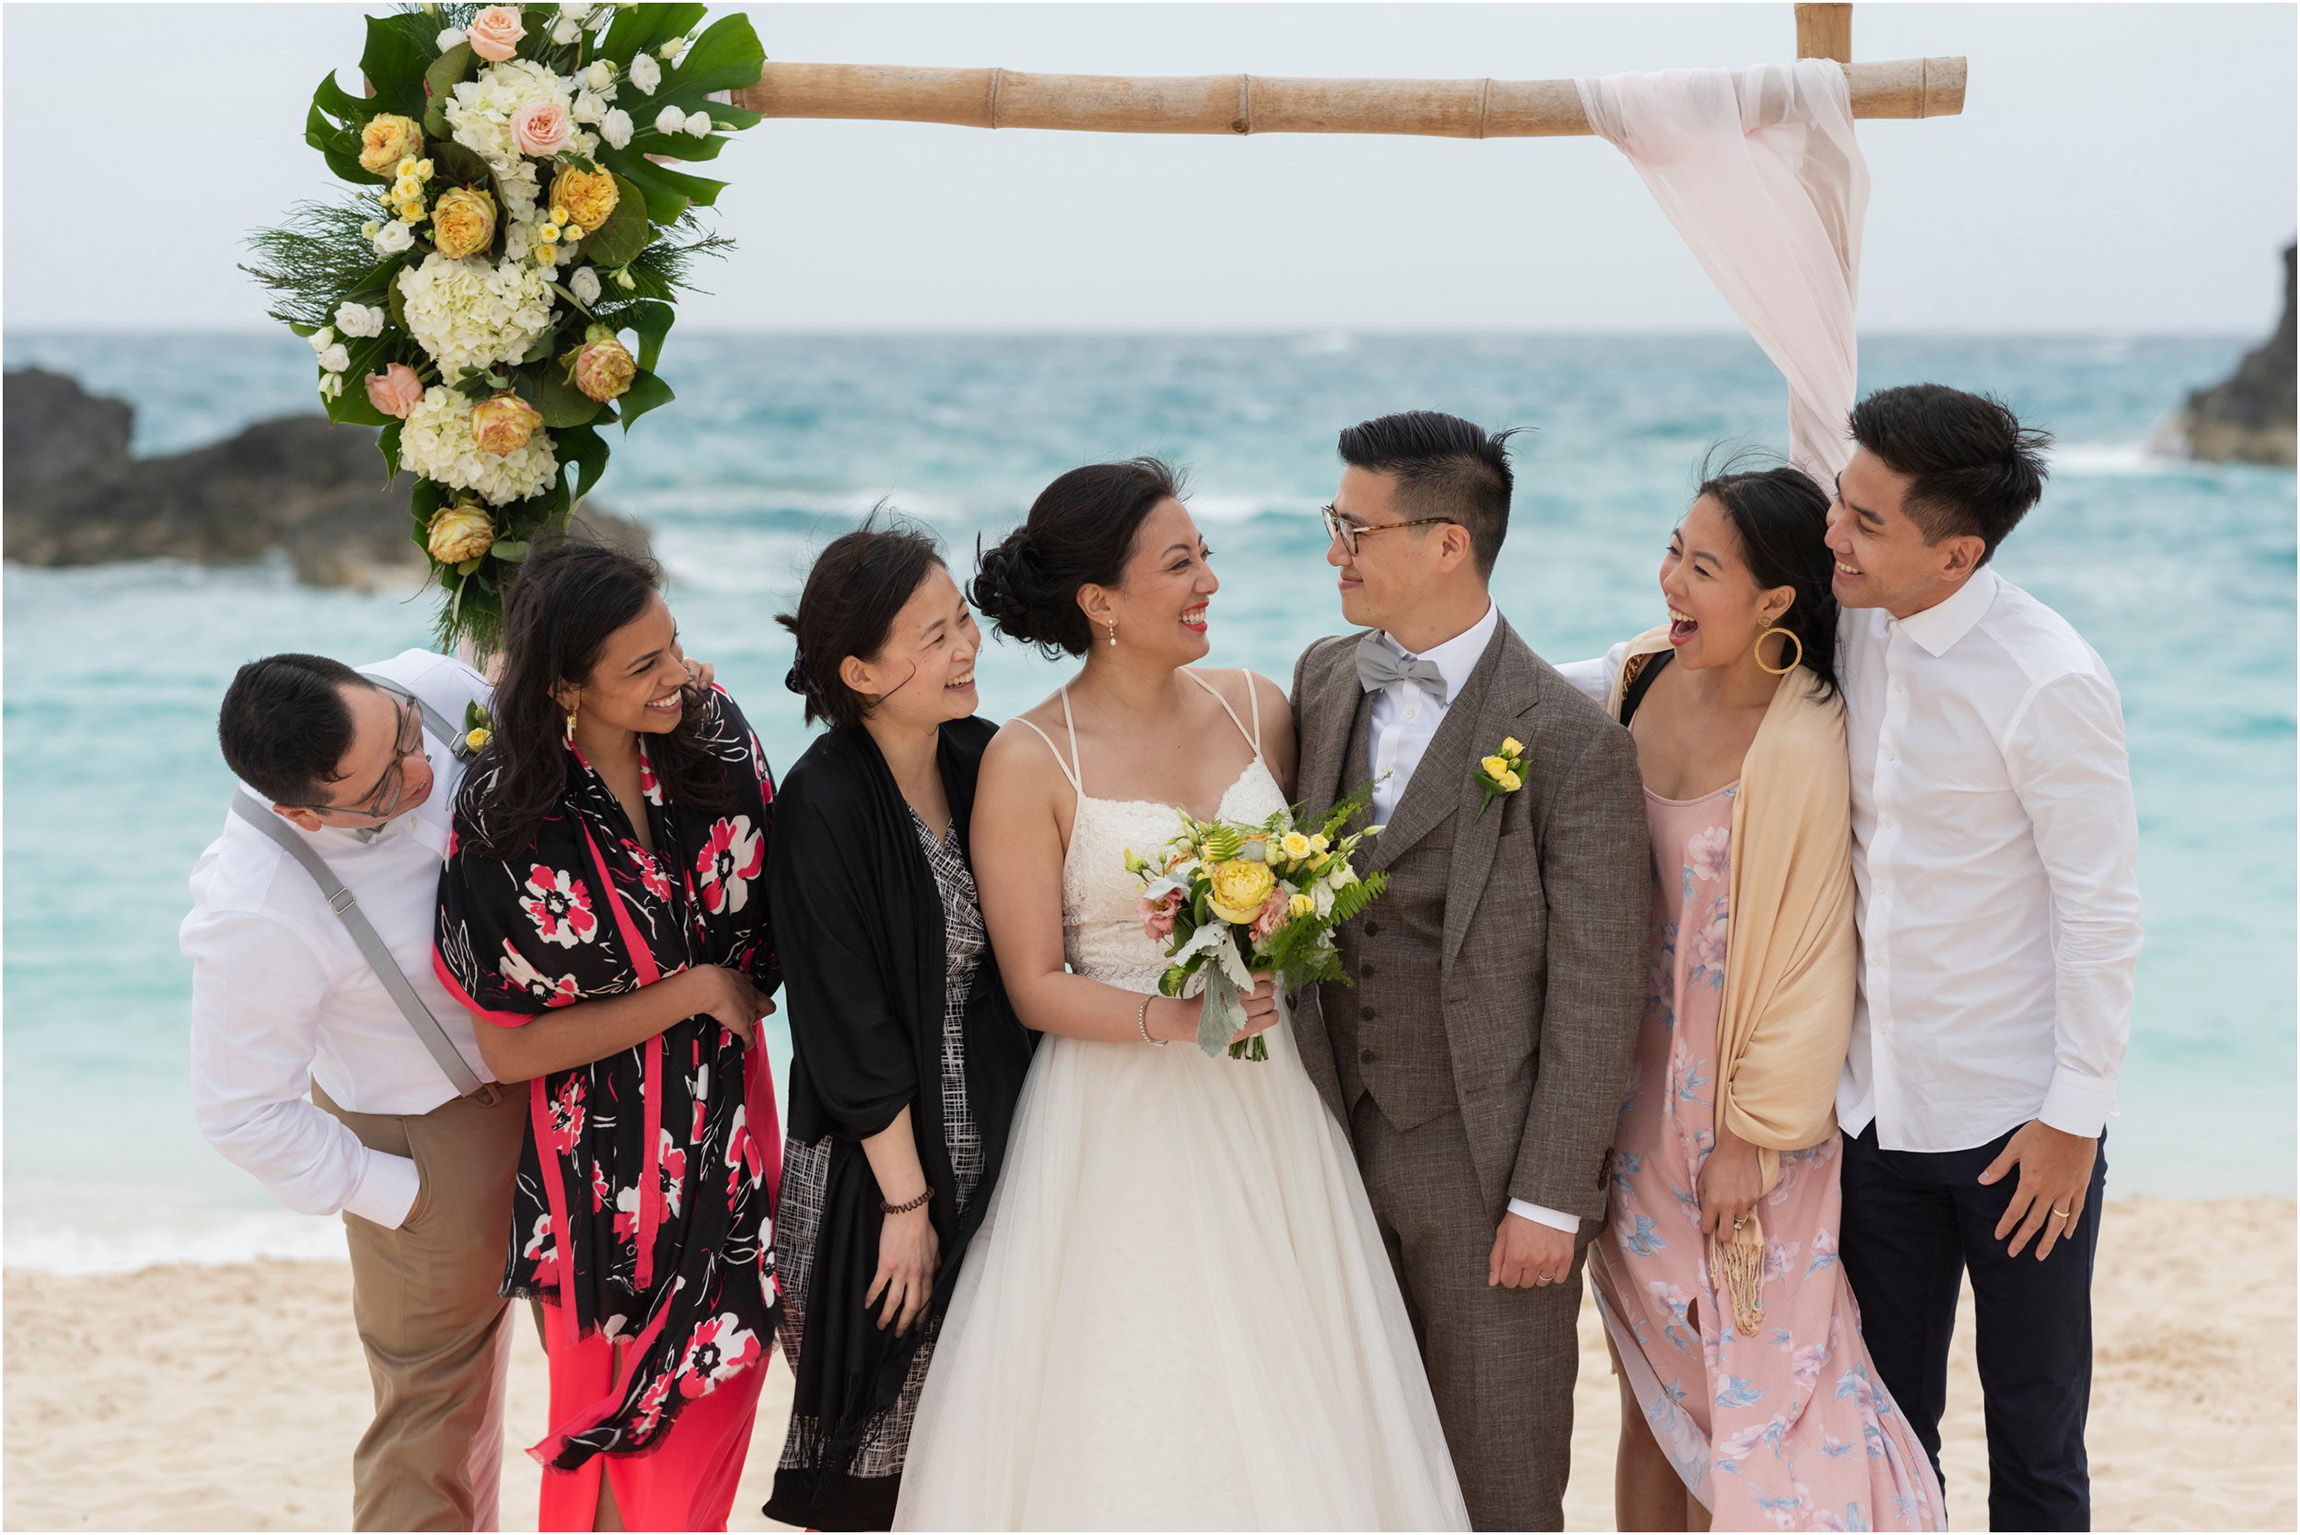 ©FianderFoto_Bermuda Wedding Photographer_Fairmont Southampton_Amy_Wilson_096.jpg